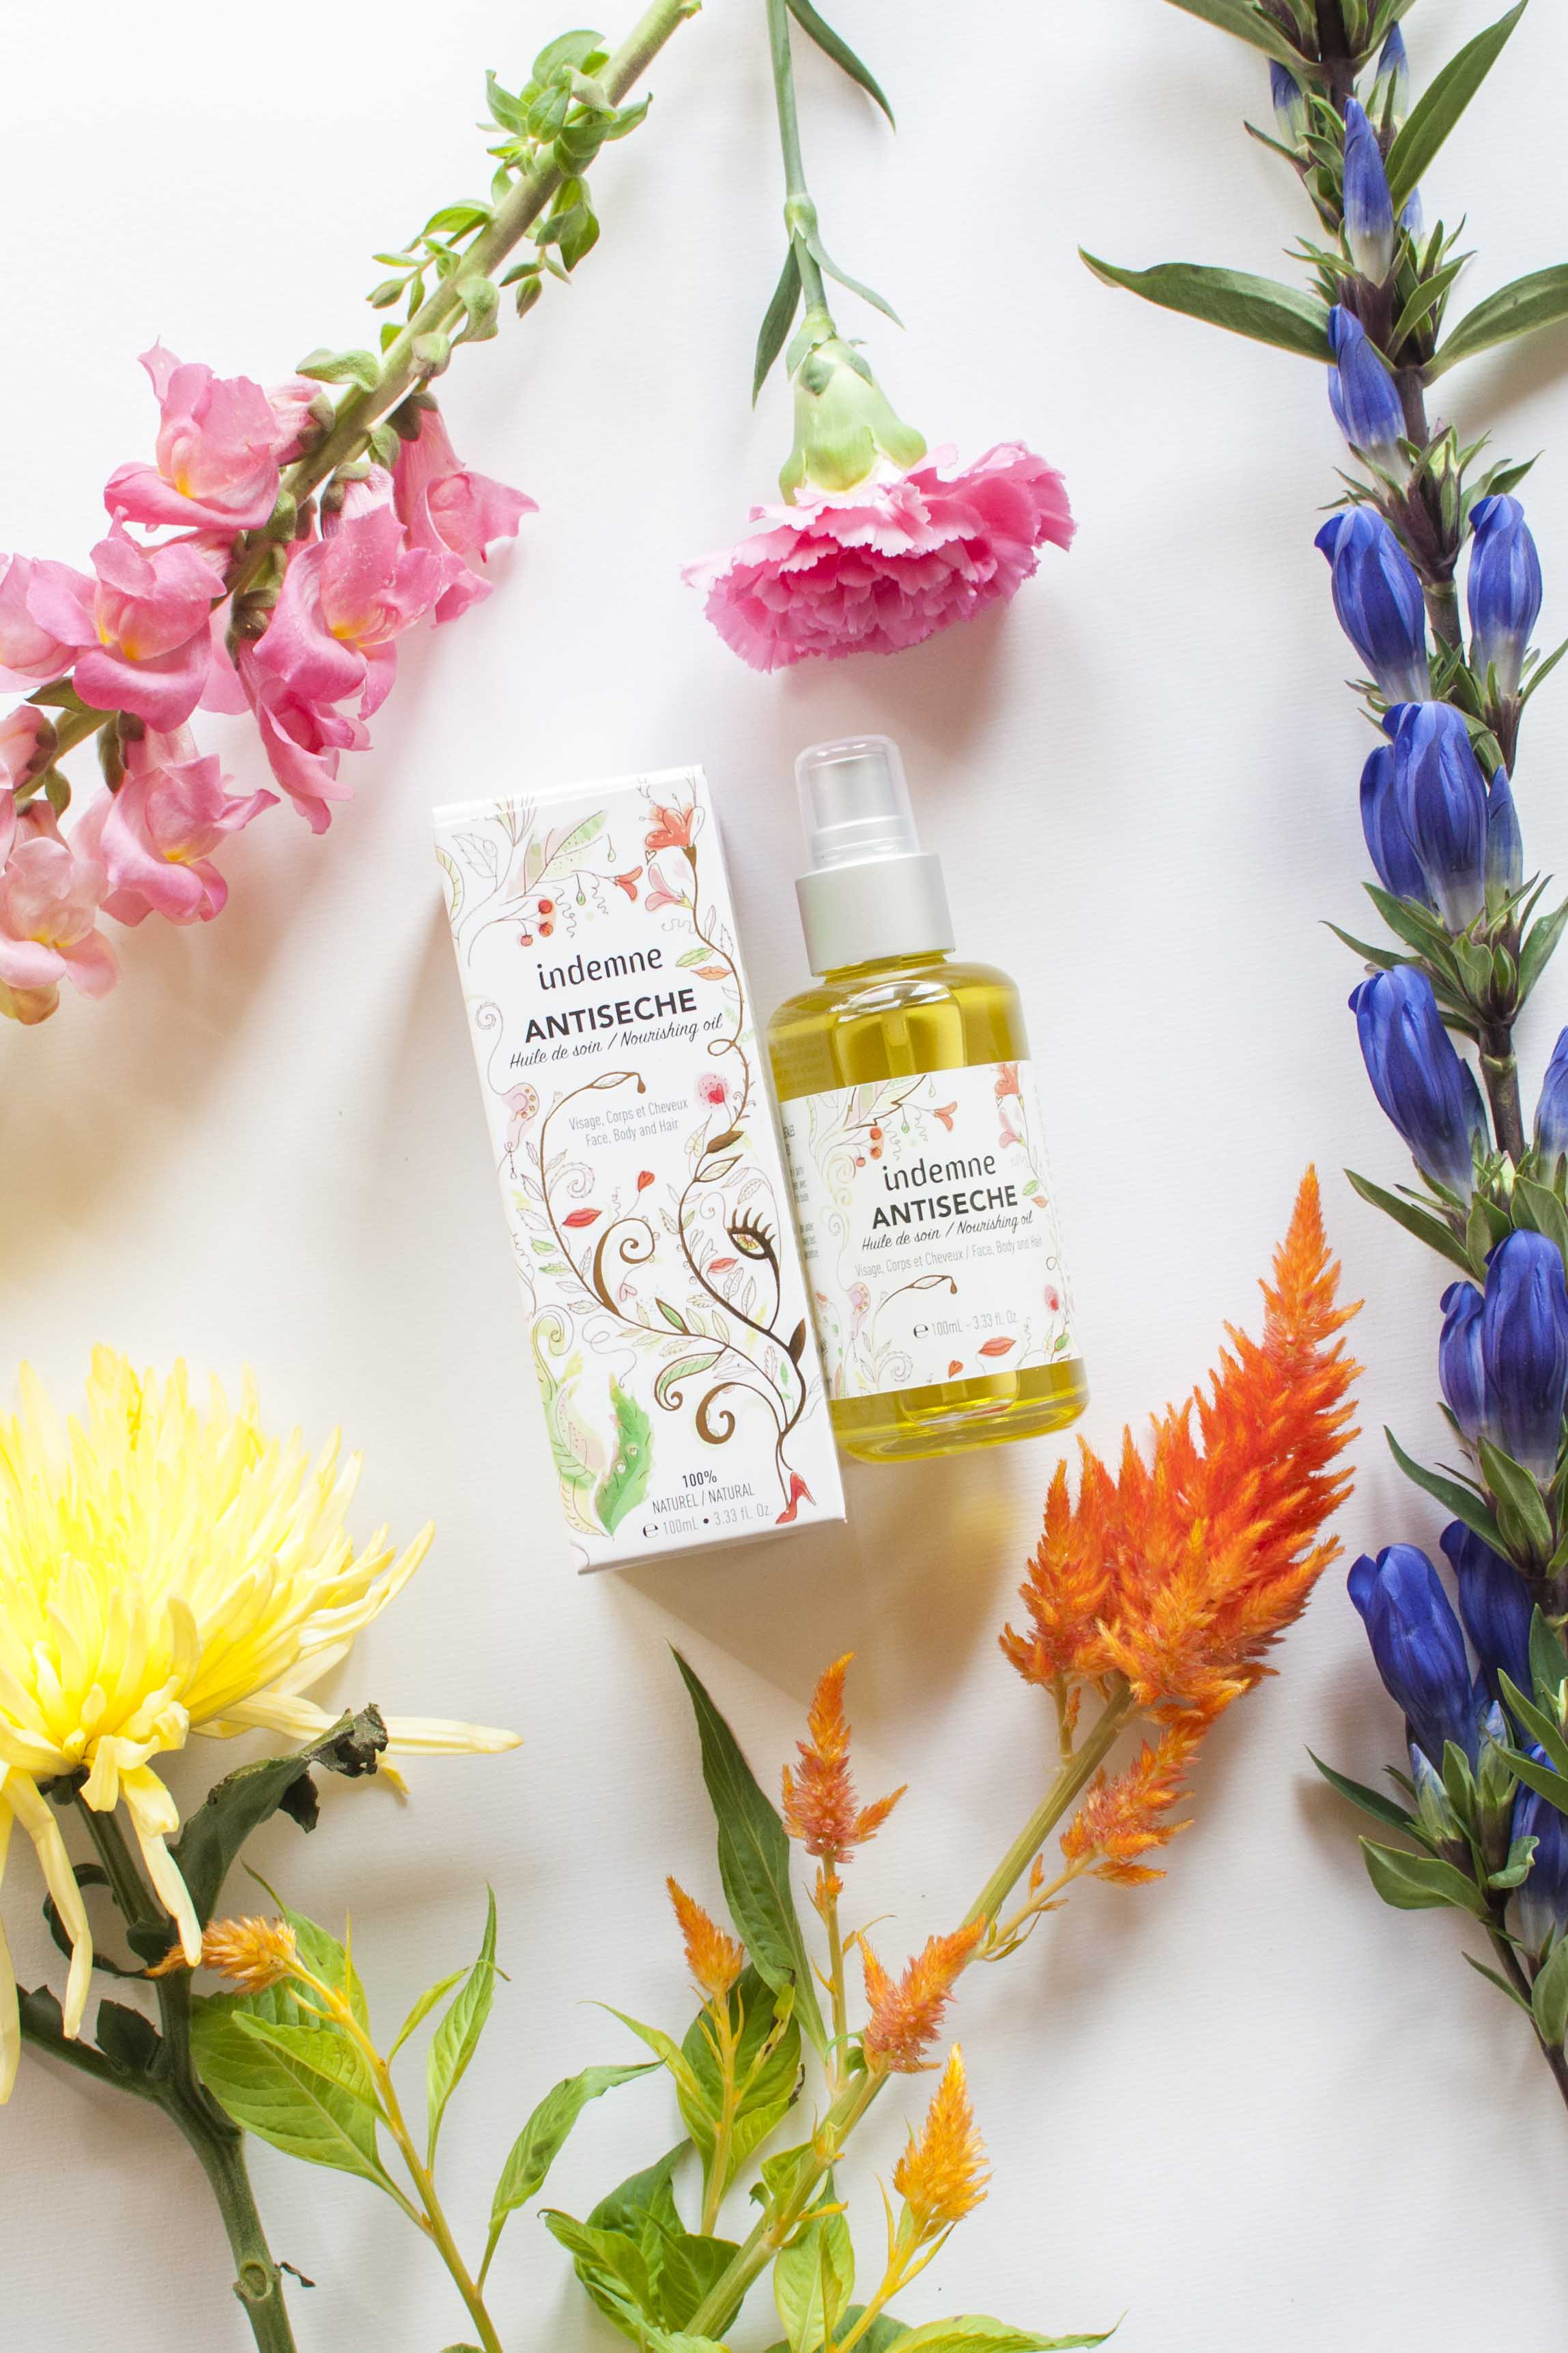 review indemne antiseche Nourishing oil